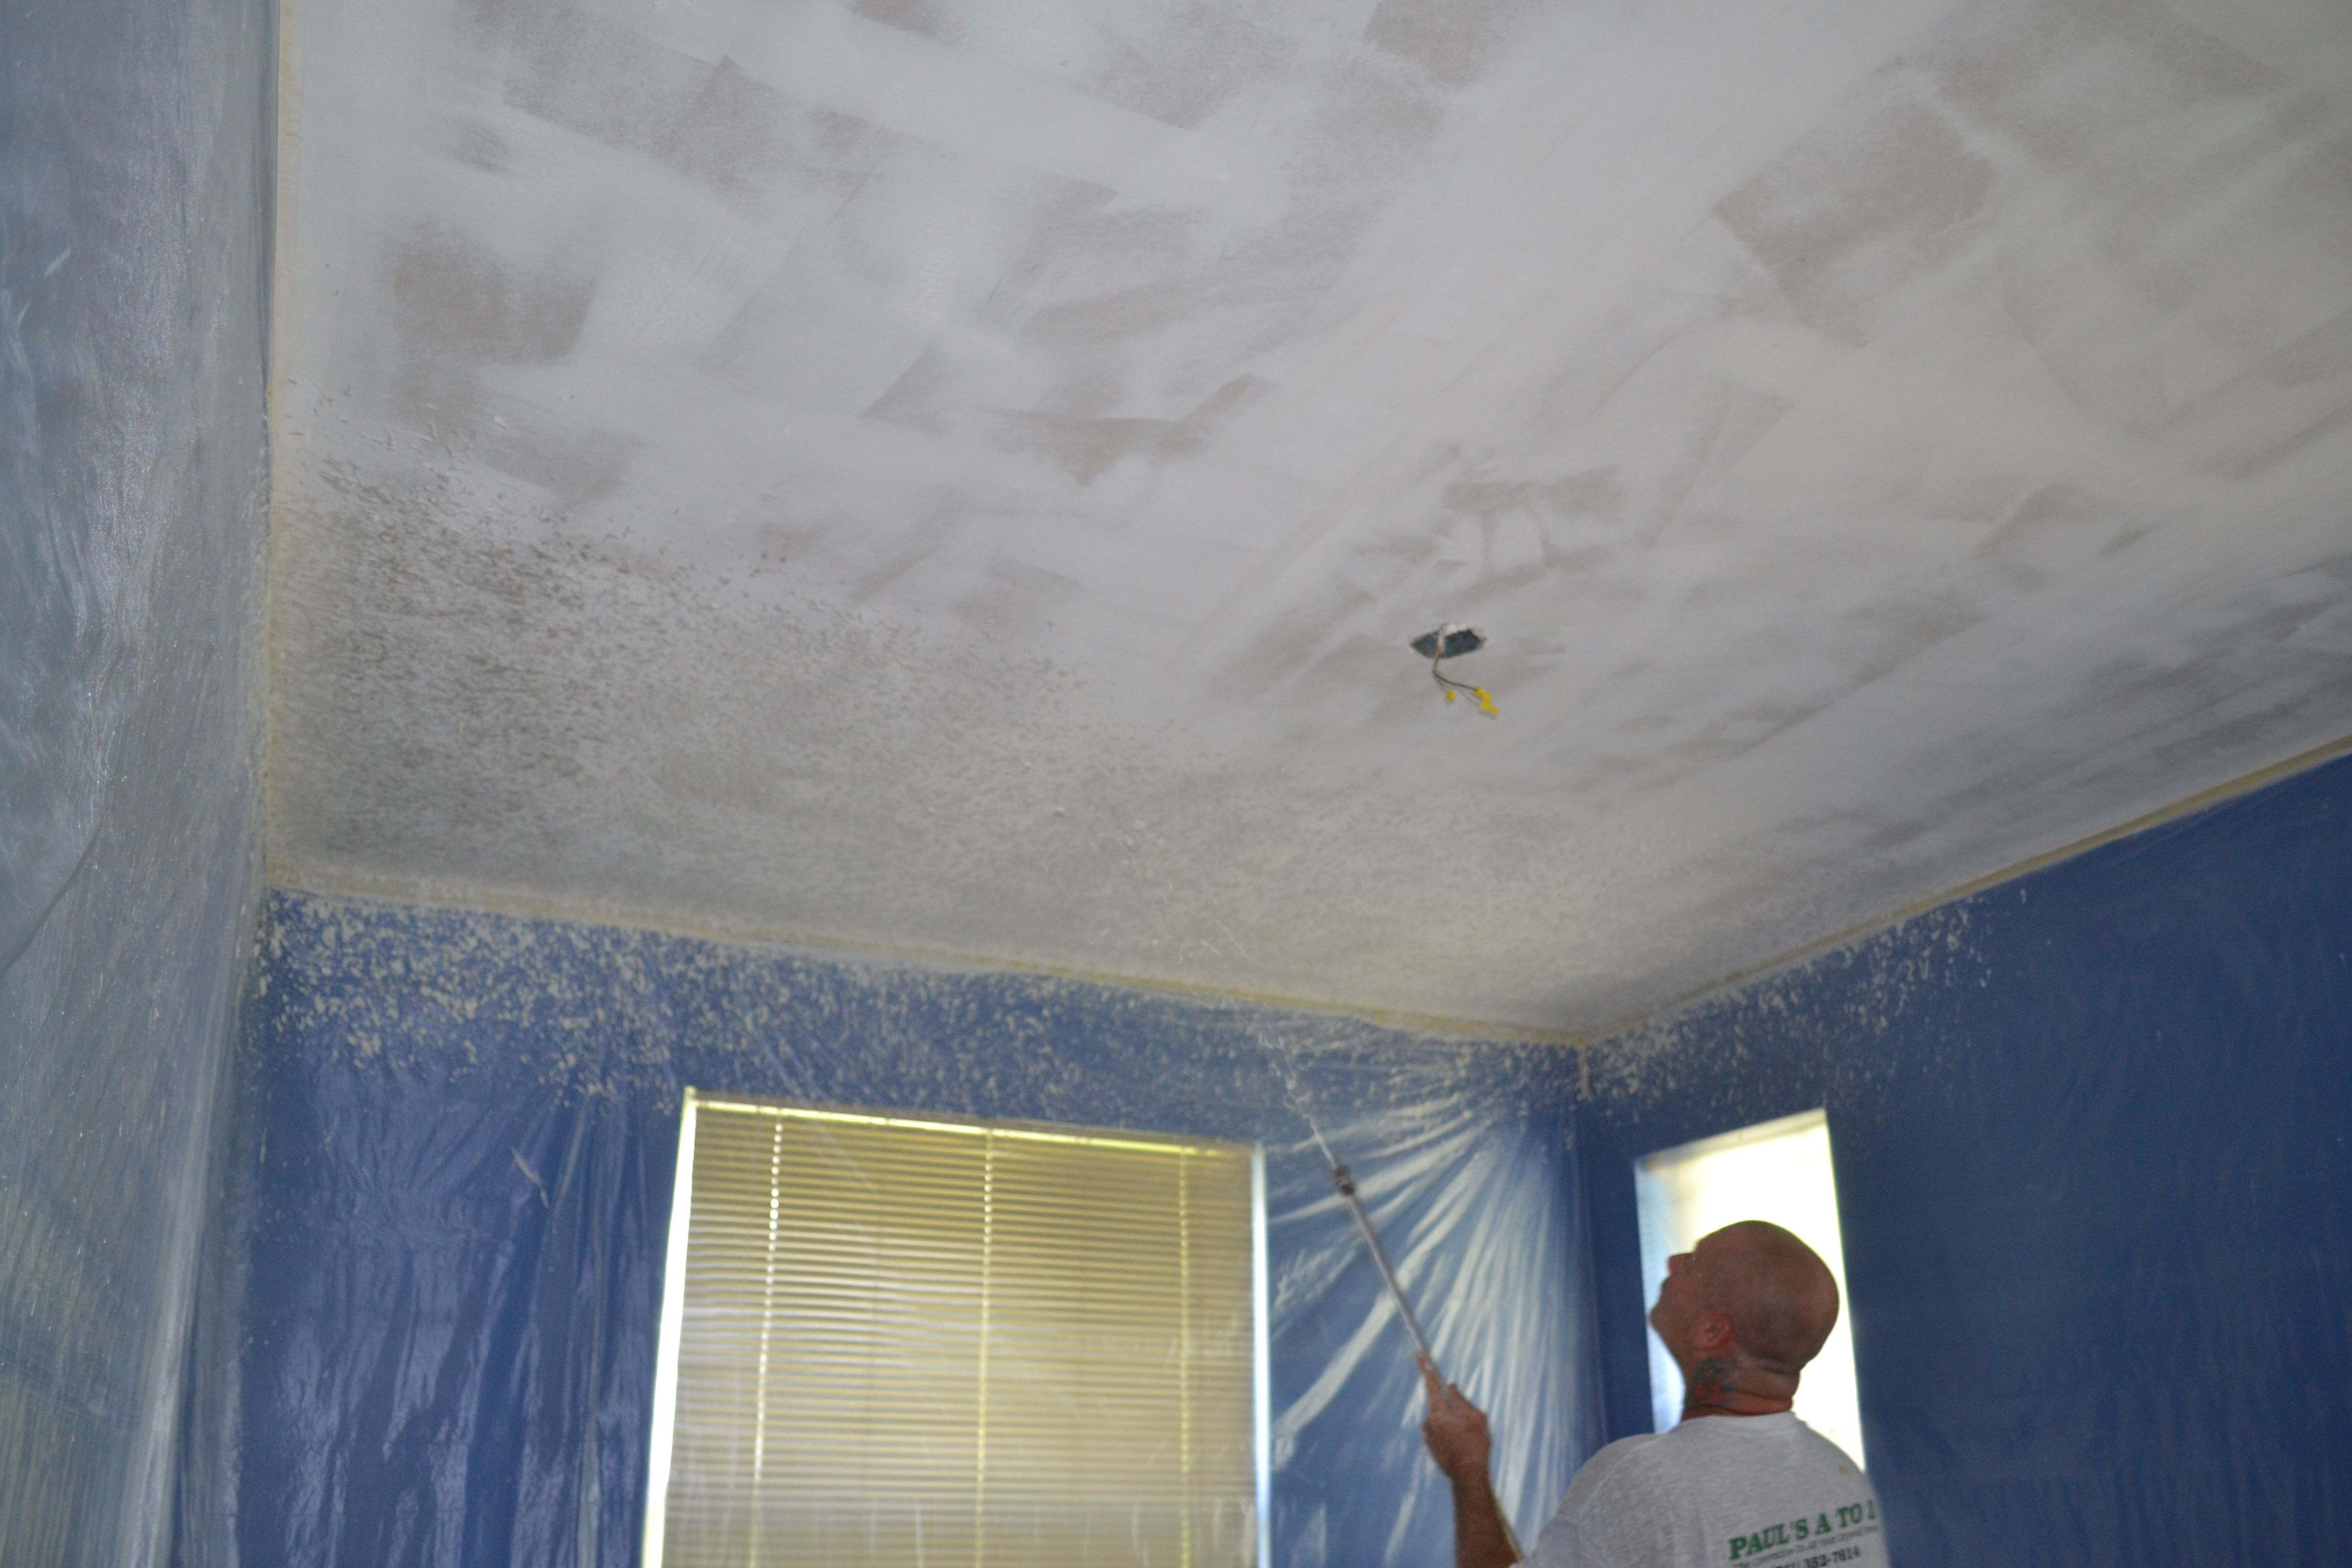 Knockdown Textured Ceiling Knockdown Spray Texture After Popcorn Removal Popcorn Ceiling